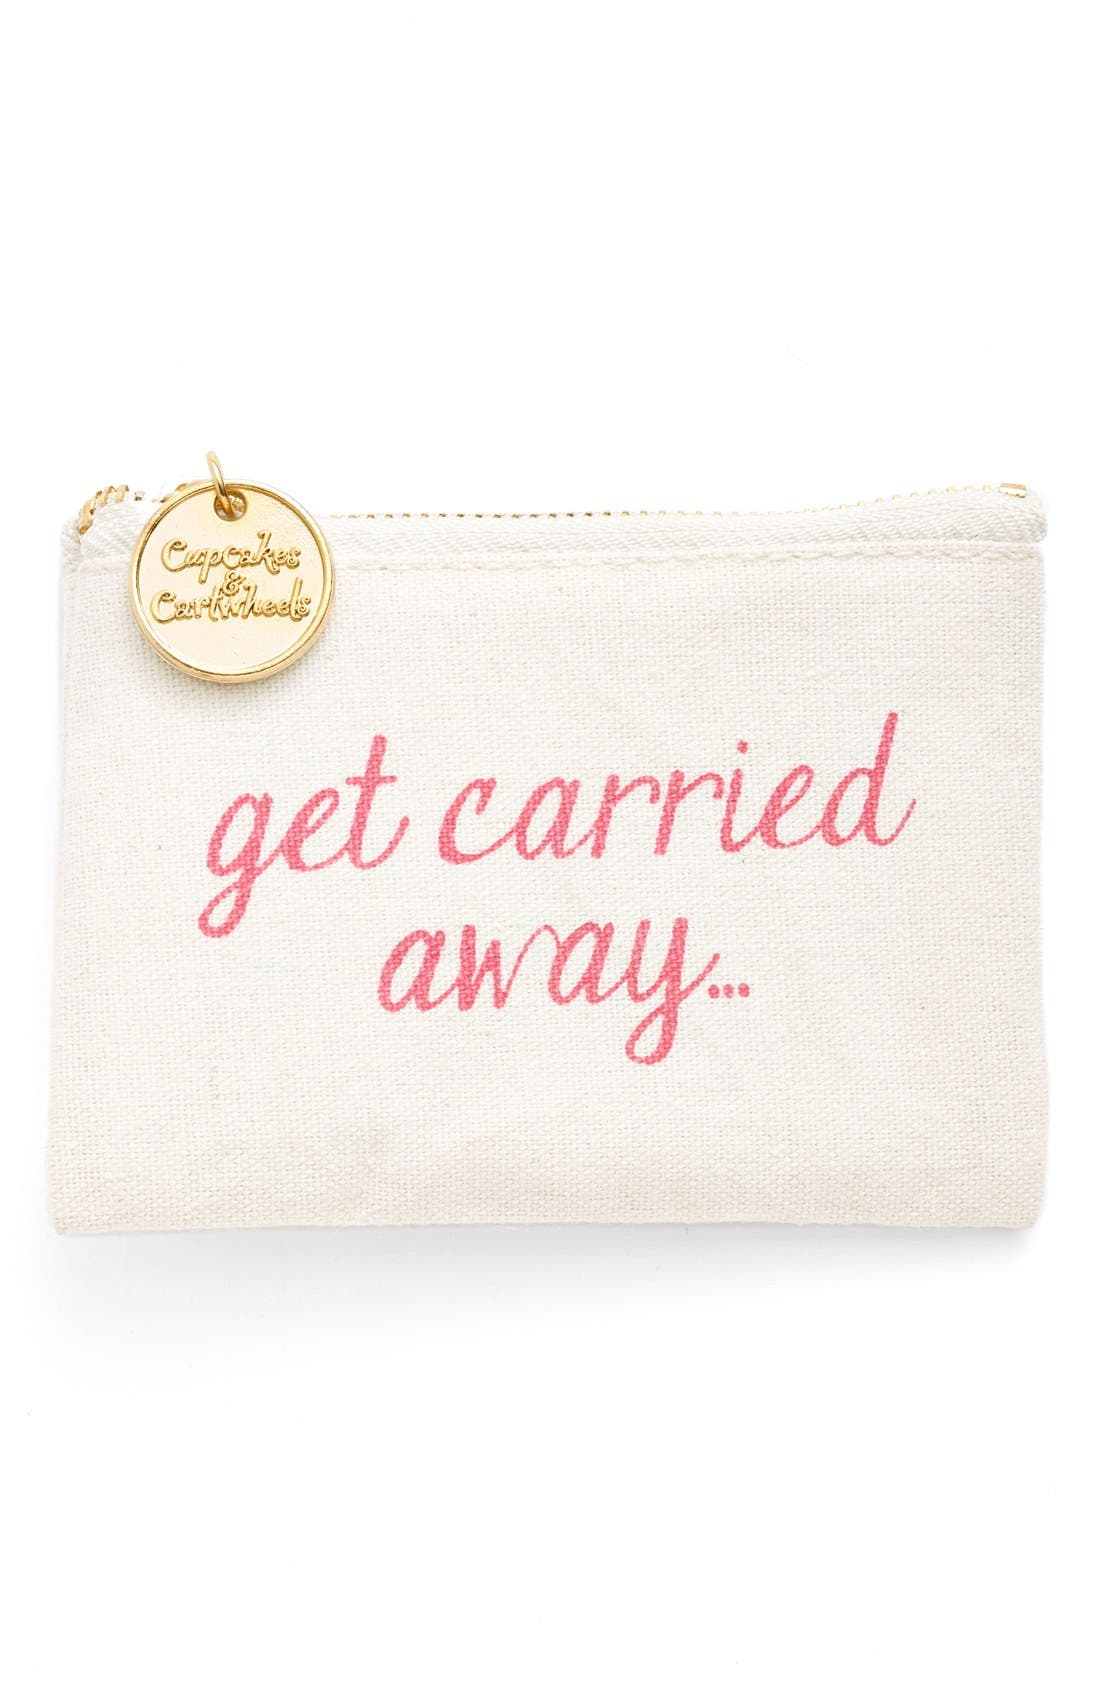 Alternate Image 1 Selected - Two's Company 'Get Carried Away' Coin Purse